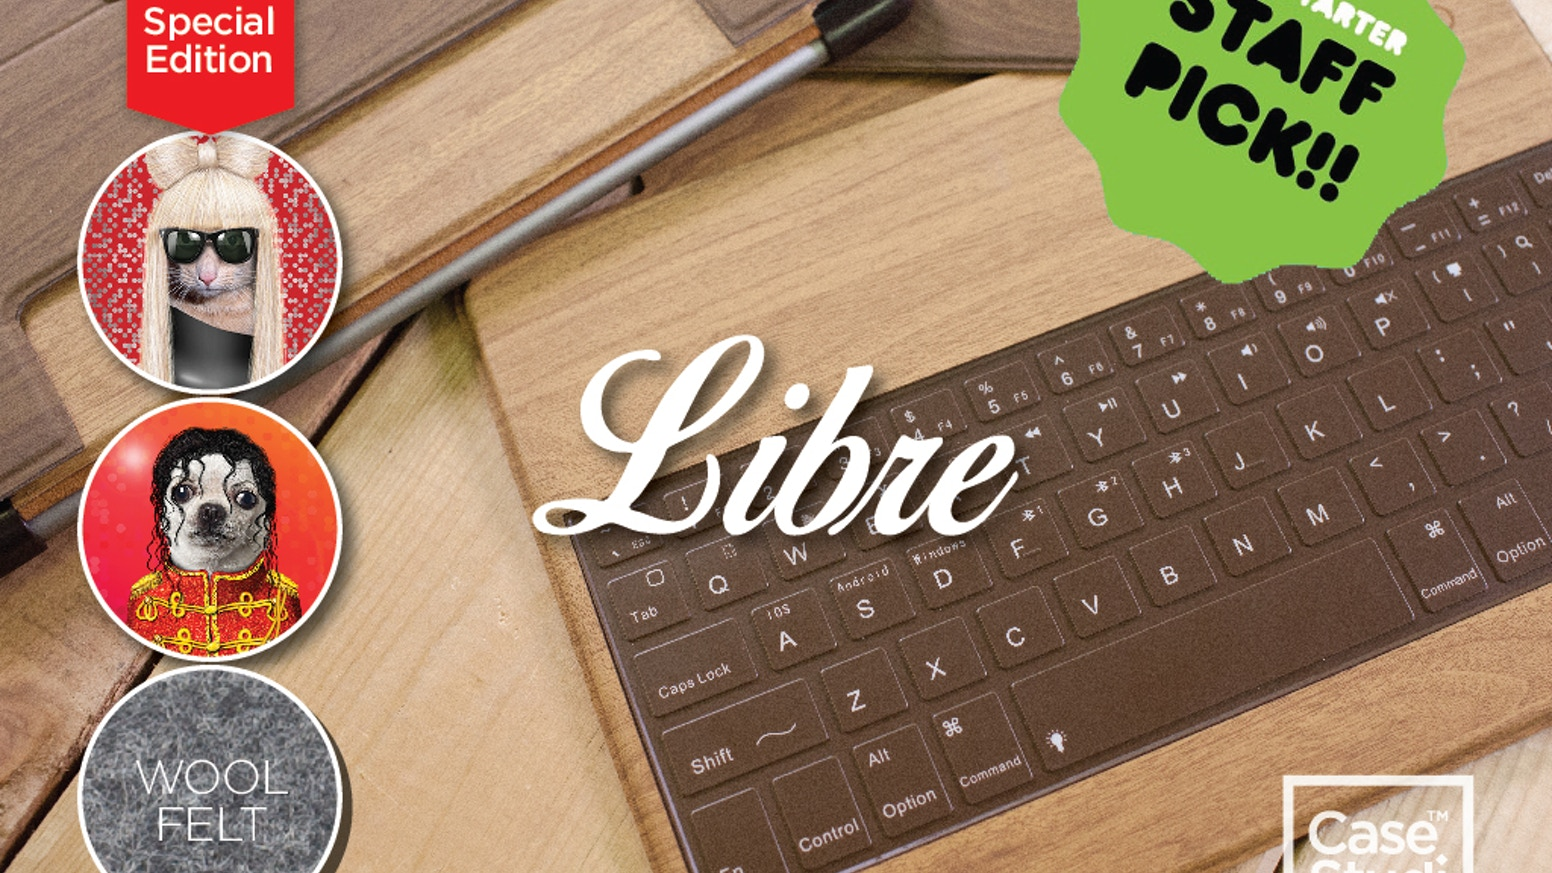 Light, stylish with great feedback, Libre is spill-proof and links up to 3 Bluetooth profiles. Special iPad air keyboard/case available